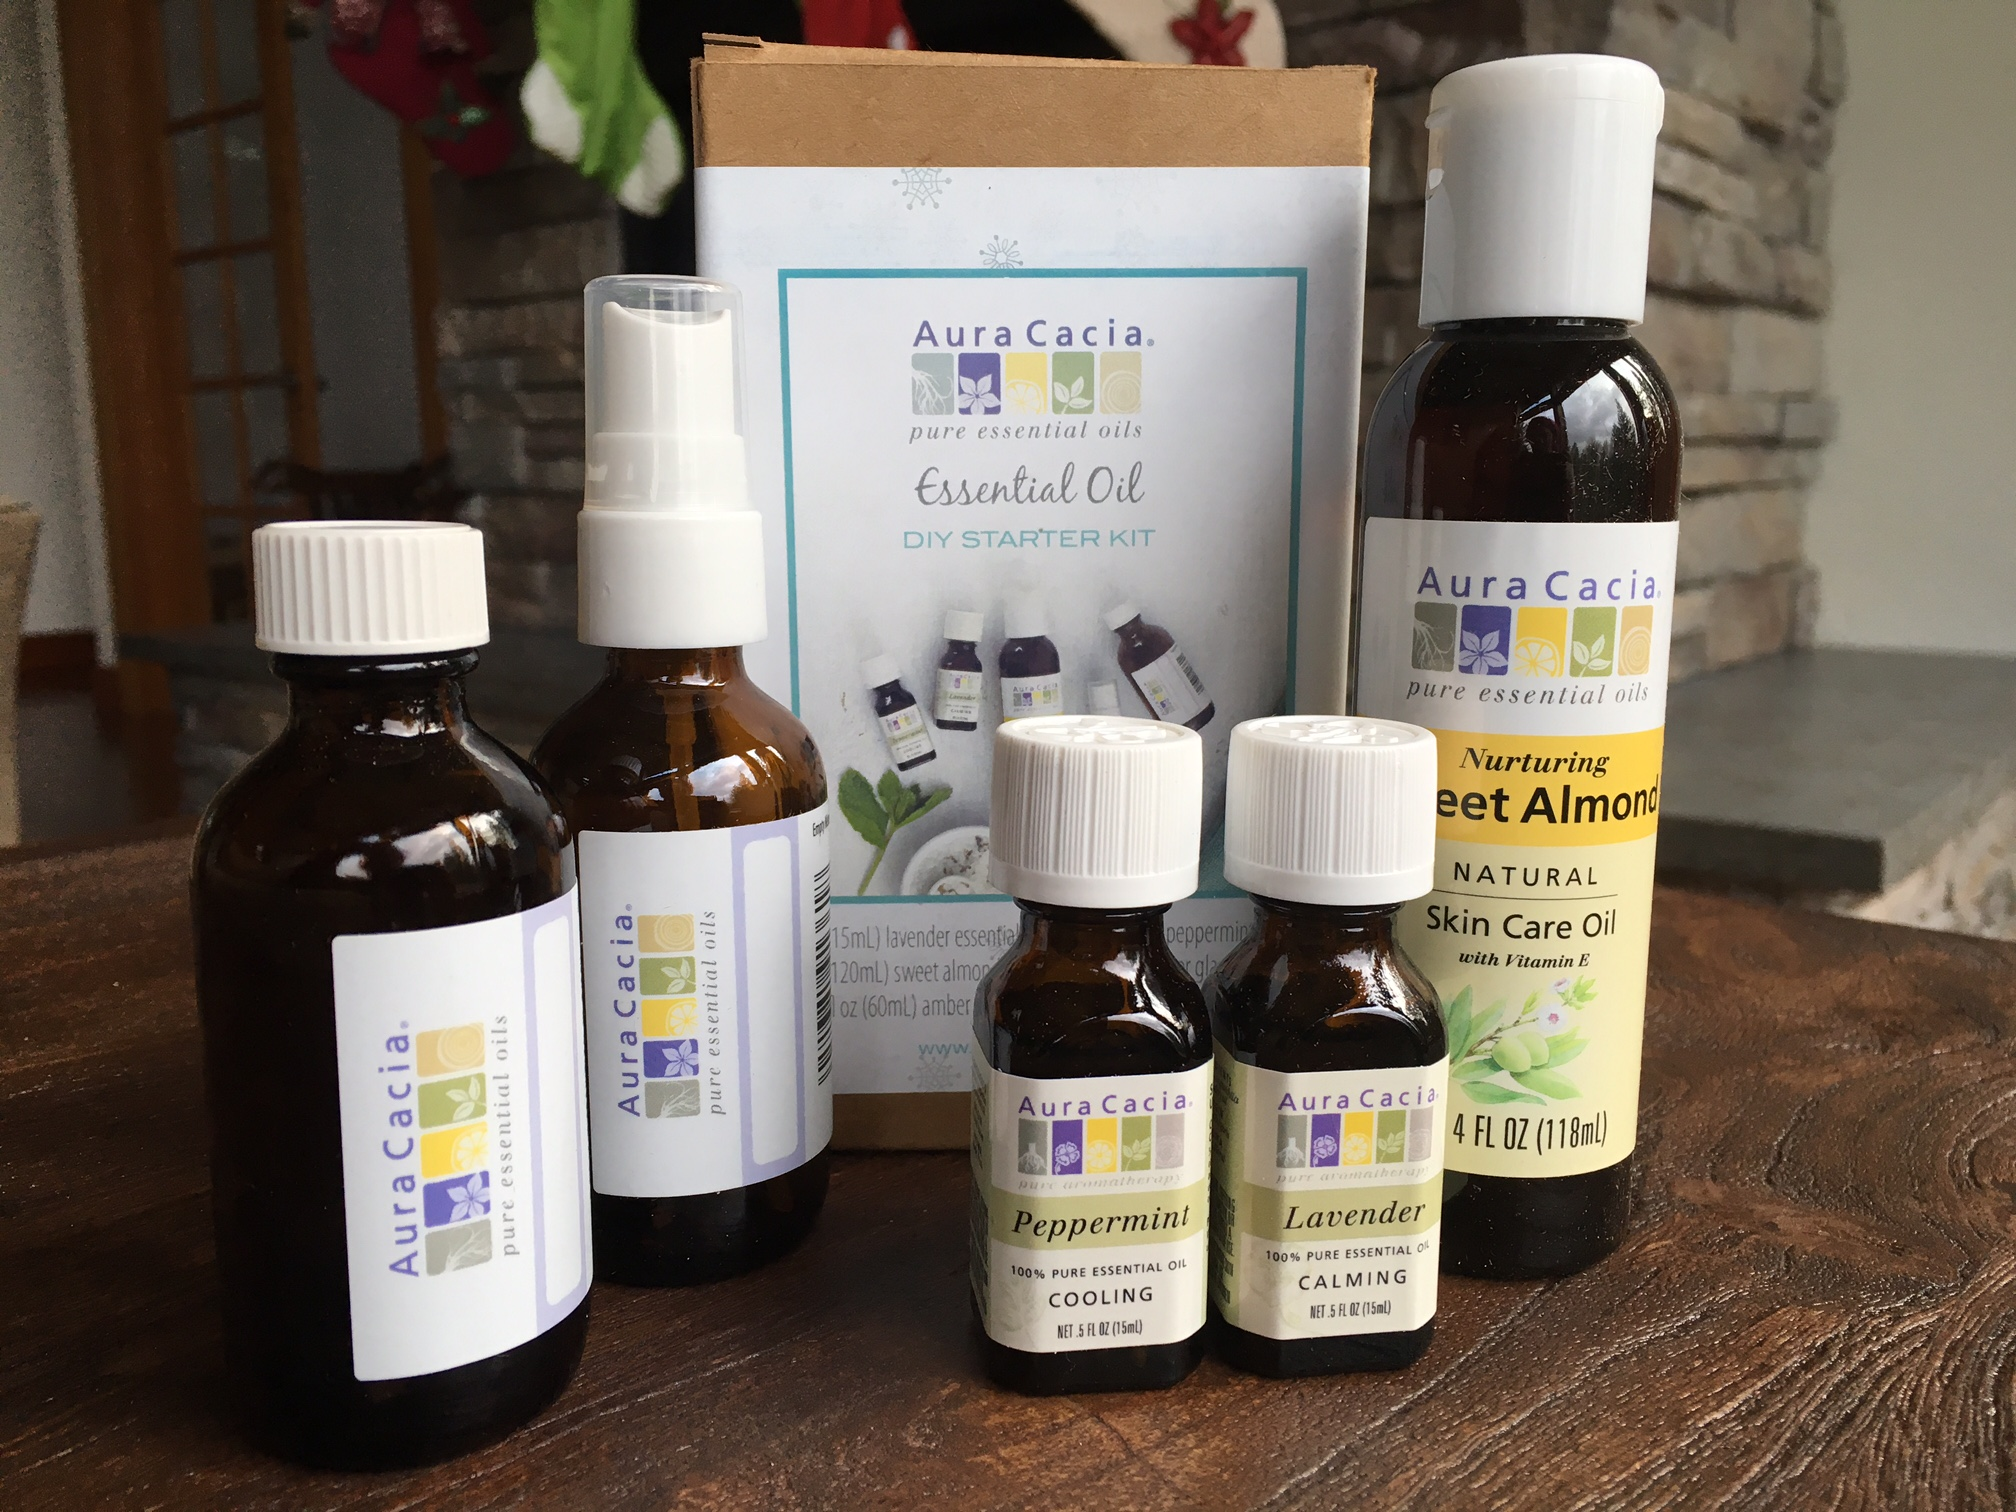 Aura Cacia Holiday Essential Oil Starter Kit